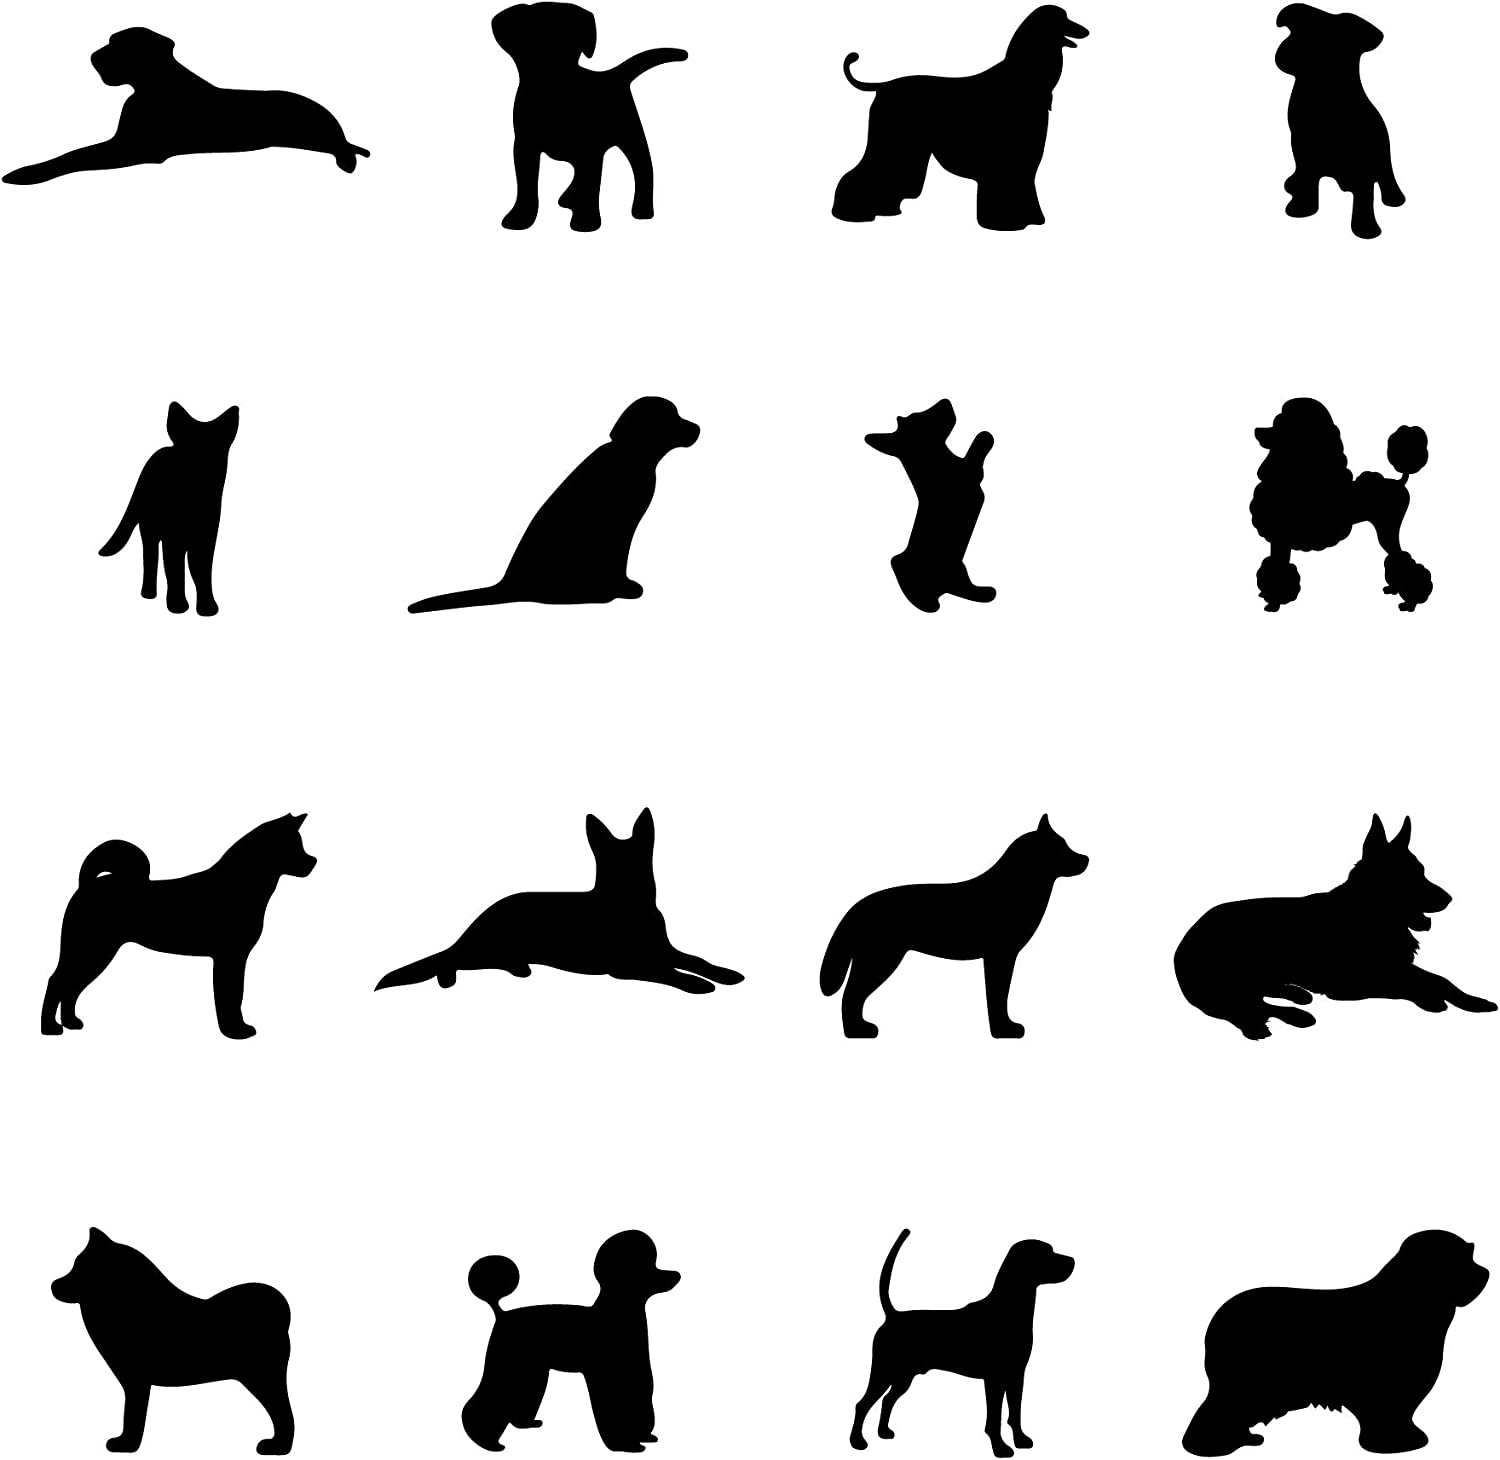 A Room with Dogs Wall Decals-Doggie Stickers for Kids Room Bedroom Nursery Playroom Decor